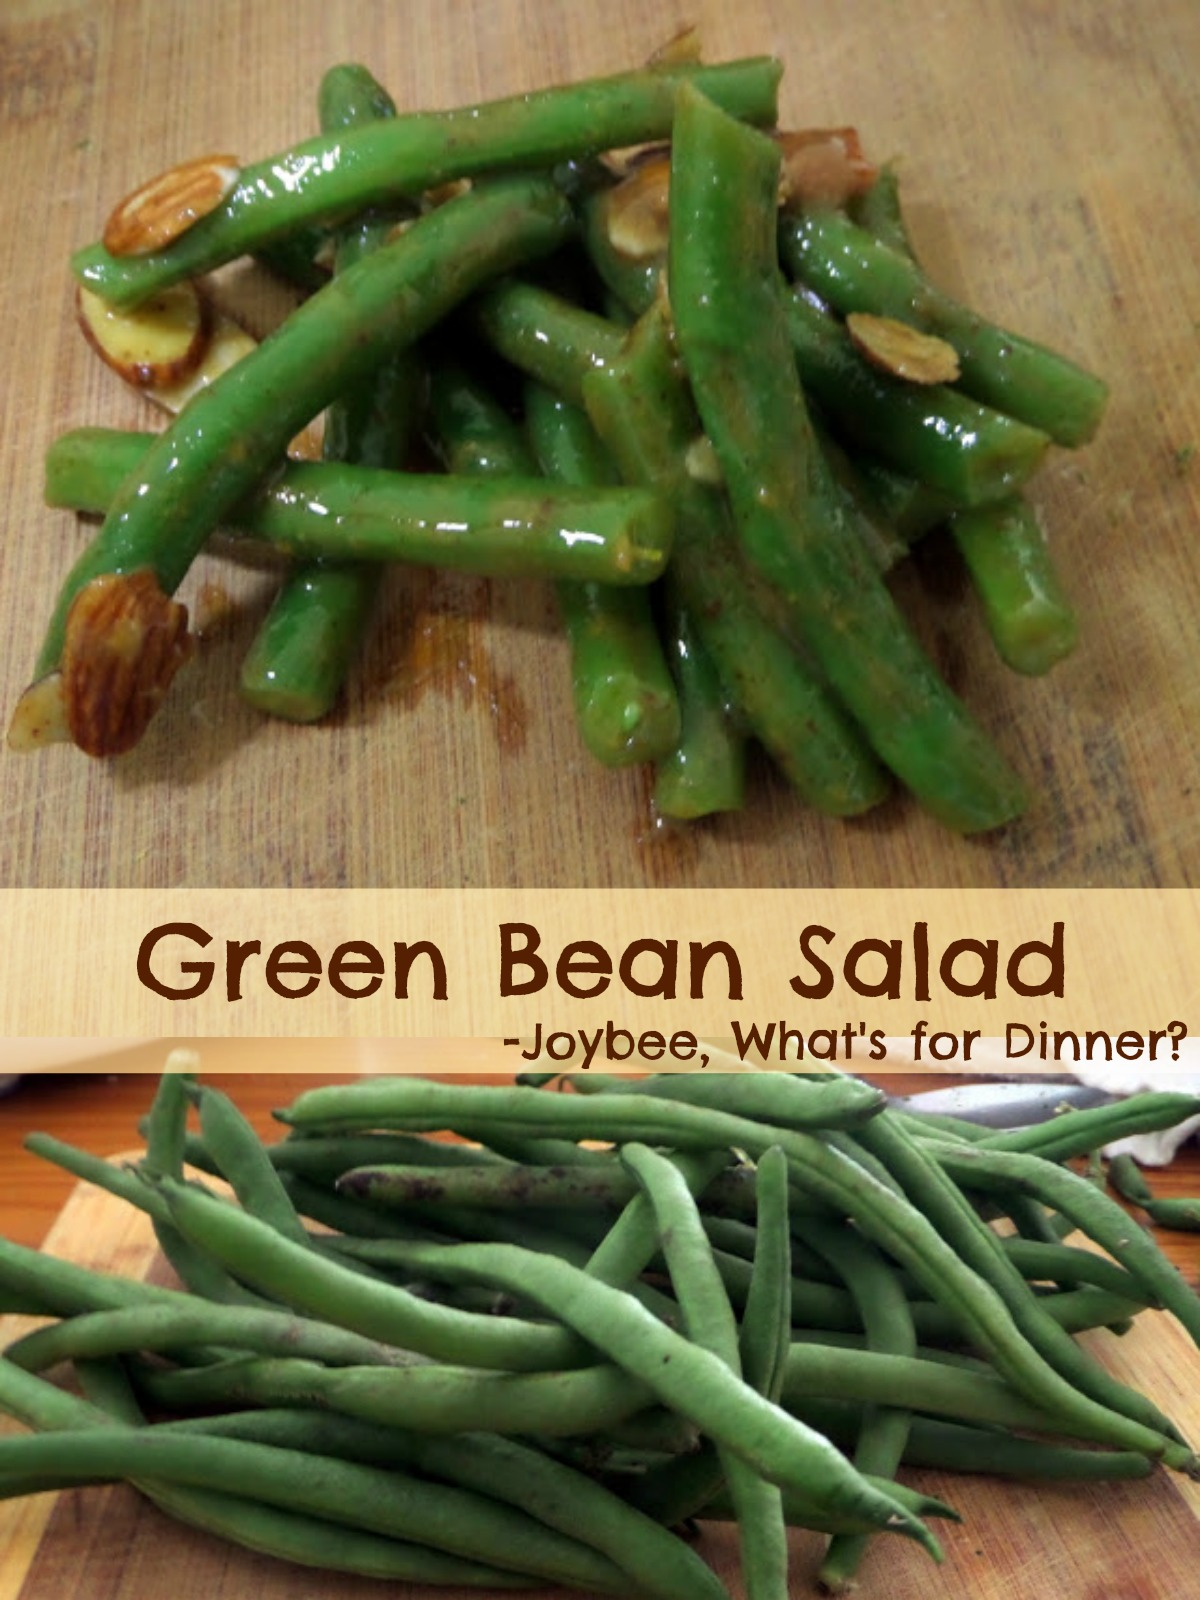 ... salad mexican green bean salad green bean and fried onion salad recipe